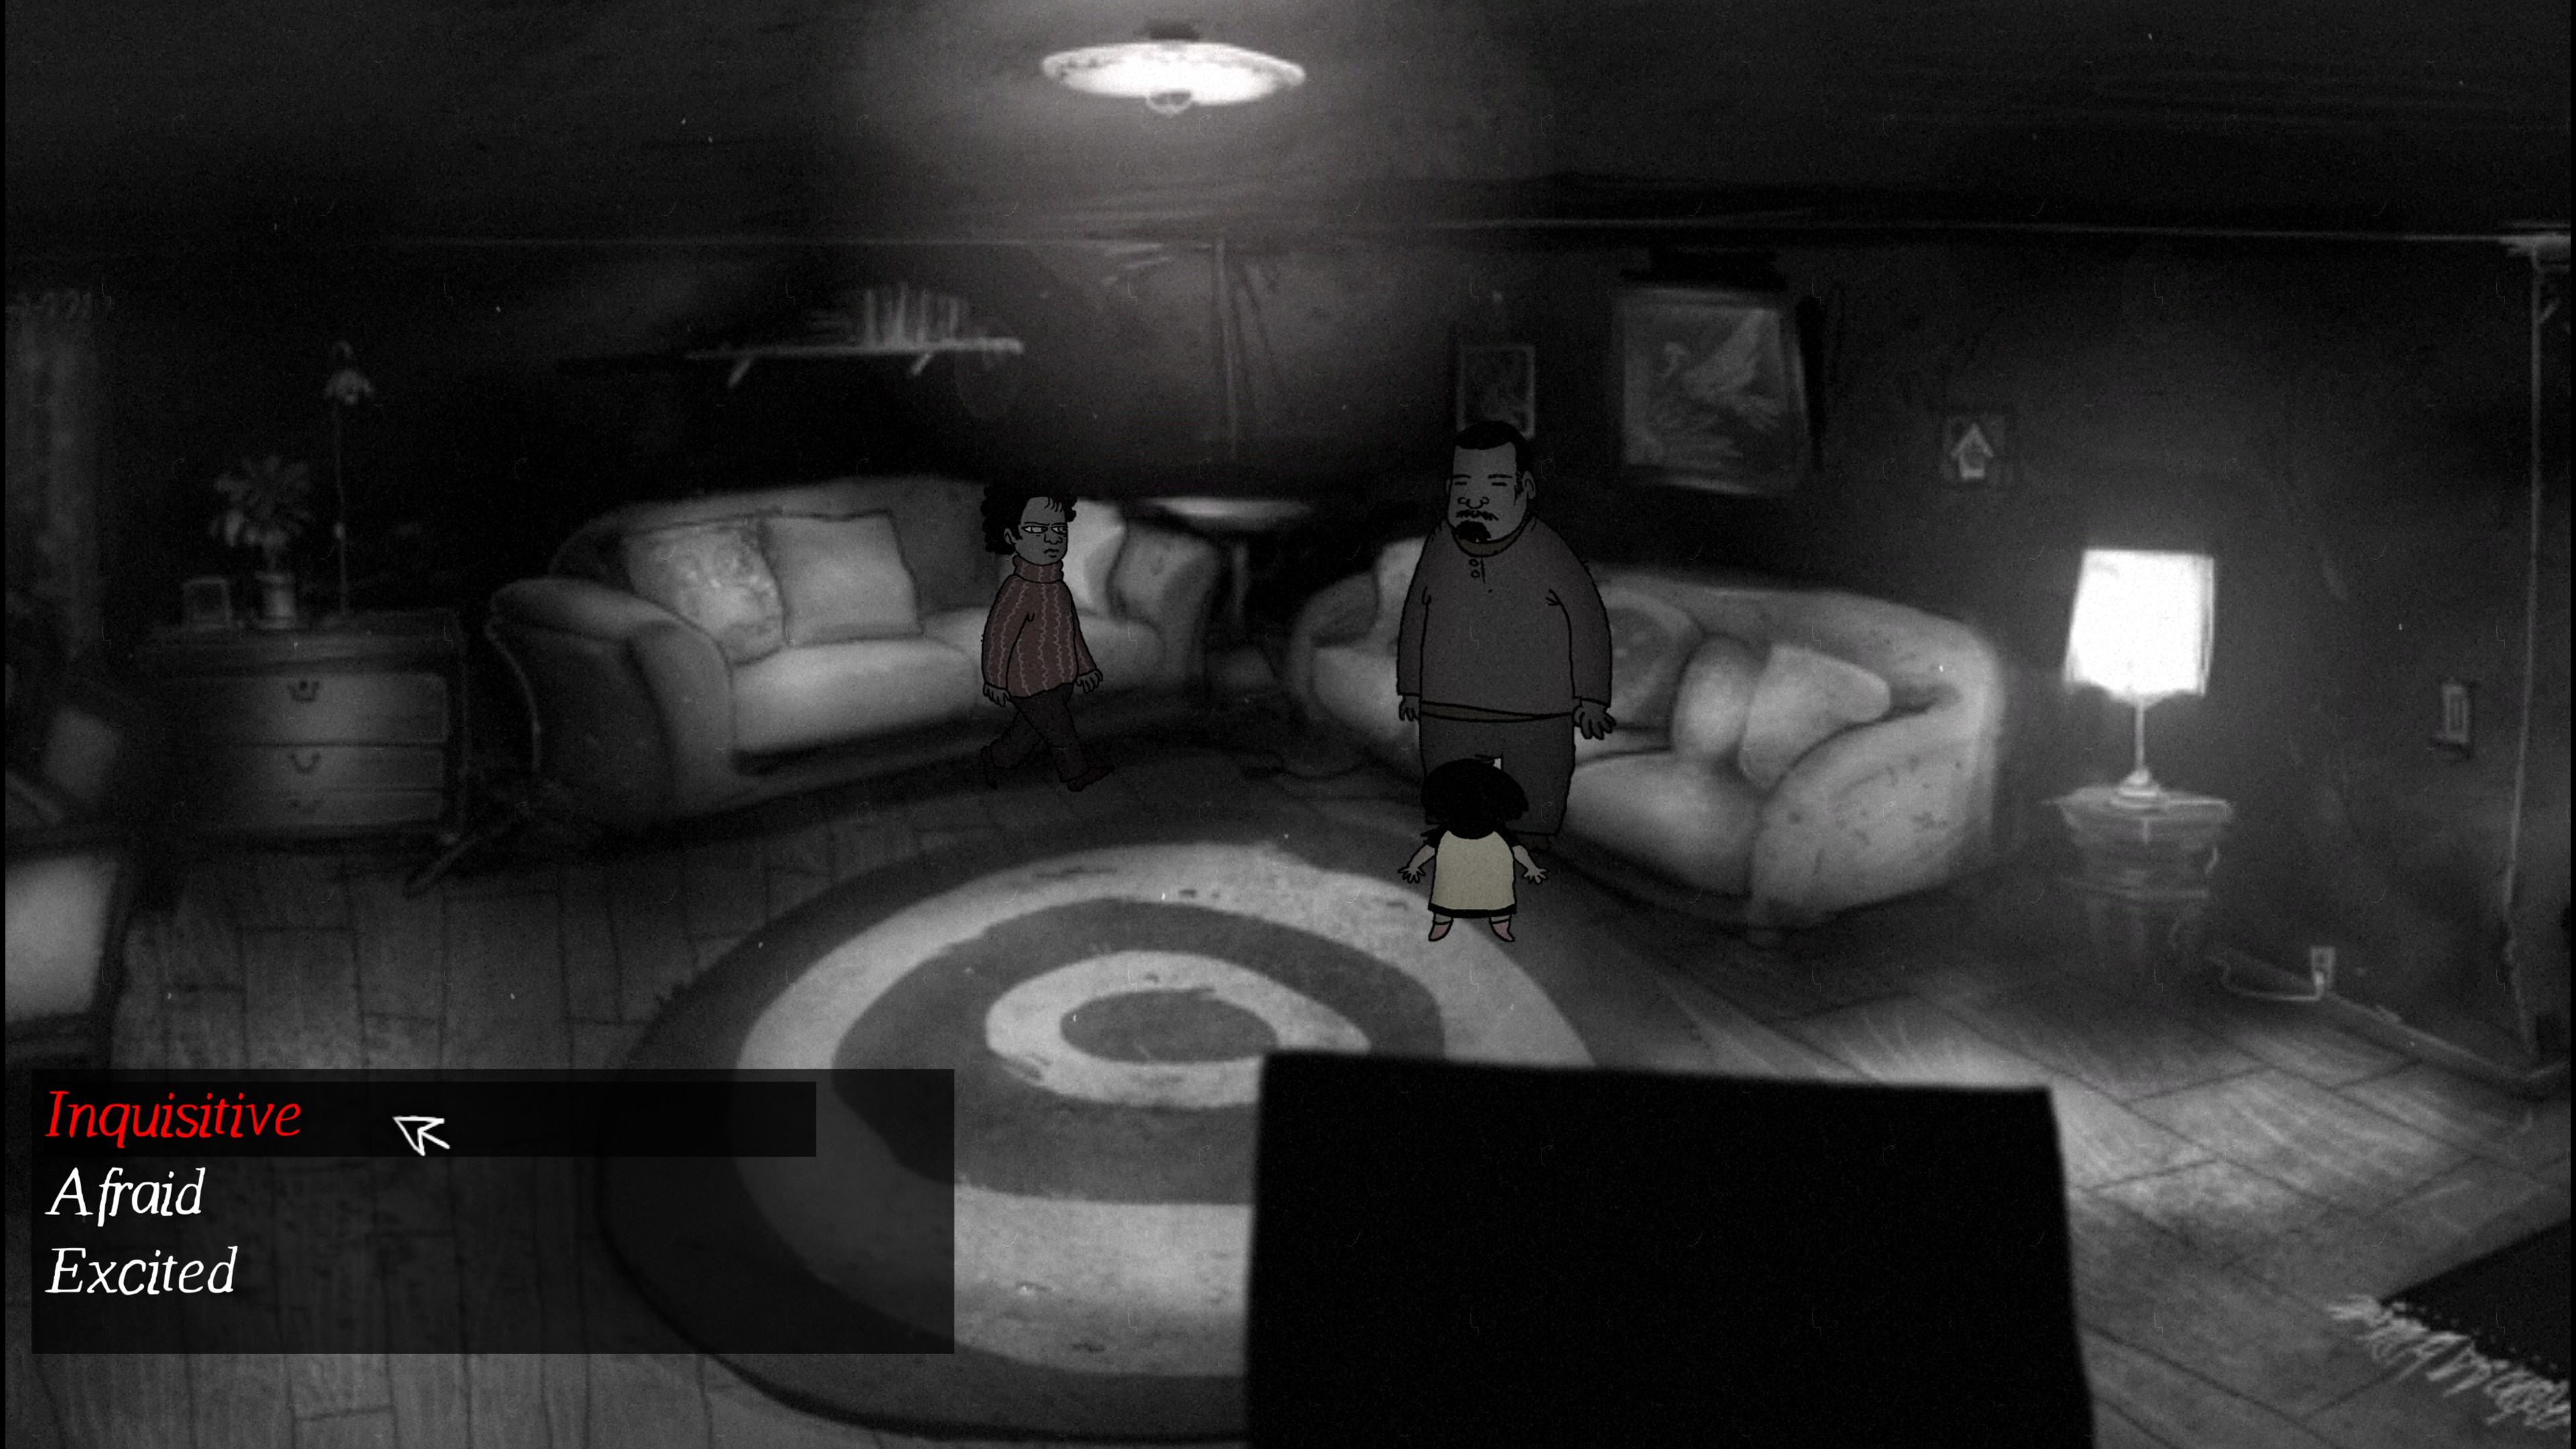 Lydia. Dark room with a man and an angry-looking woman. Dialog options are inquisitive, afraid, and excited.